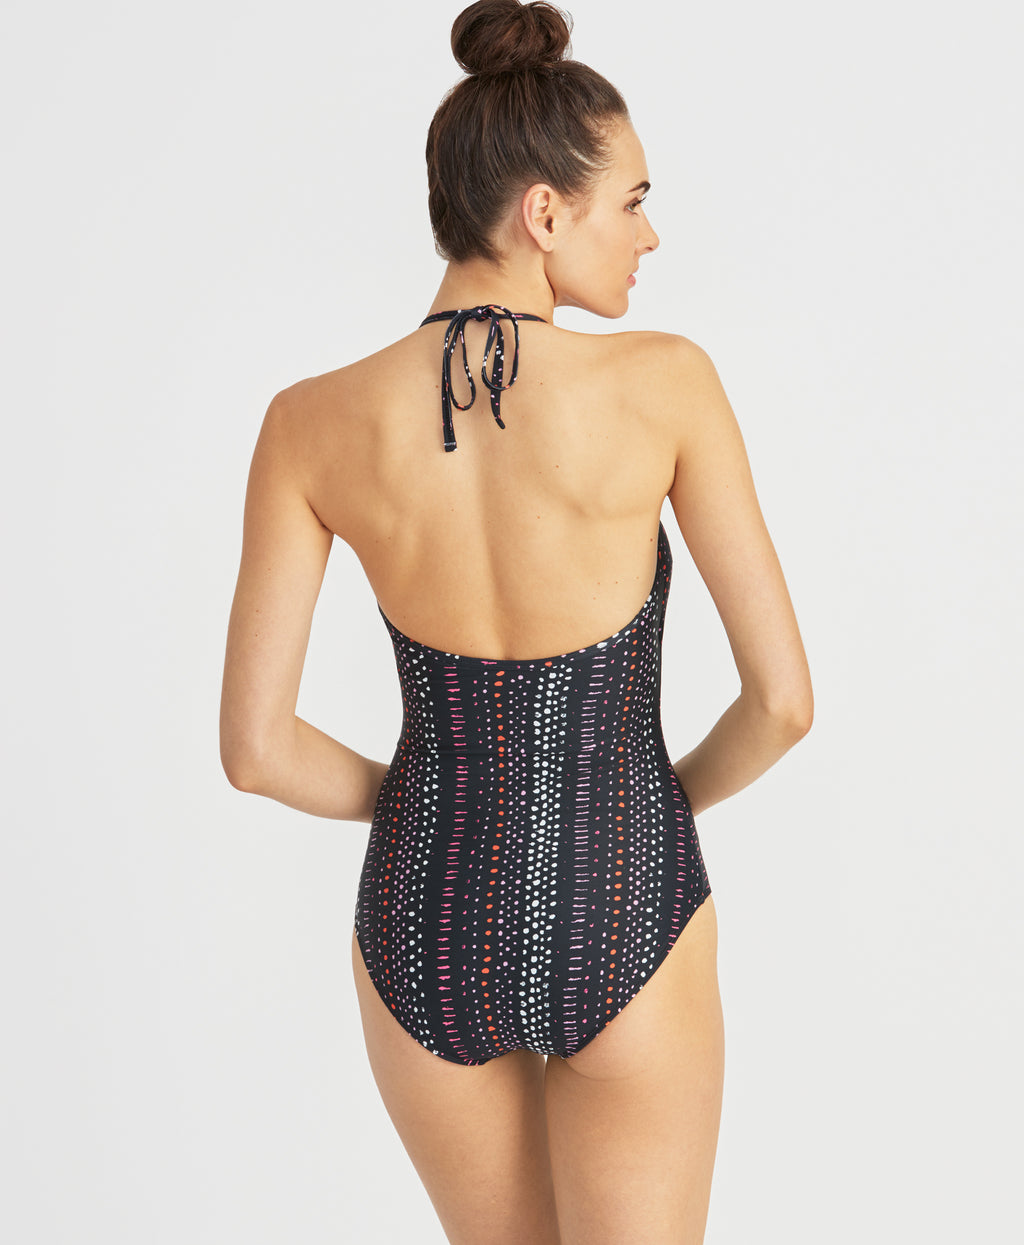 Dot Dash One Piece | Dot Dash Black